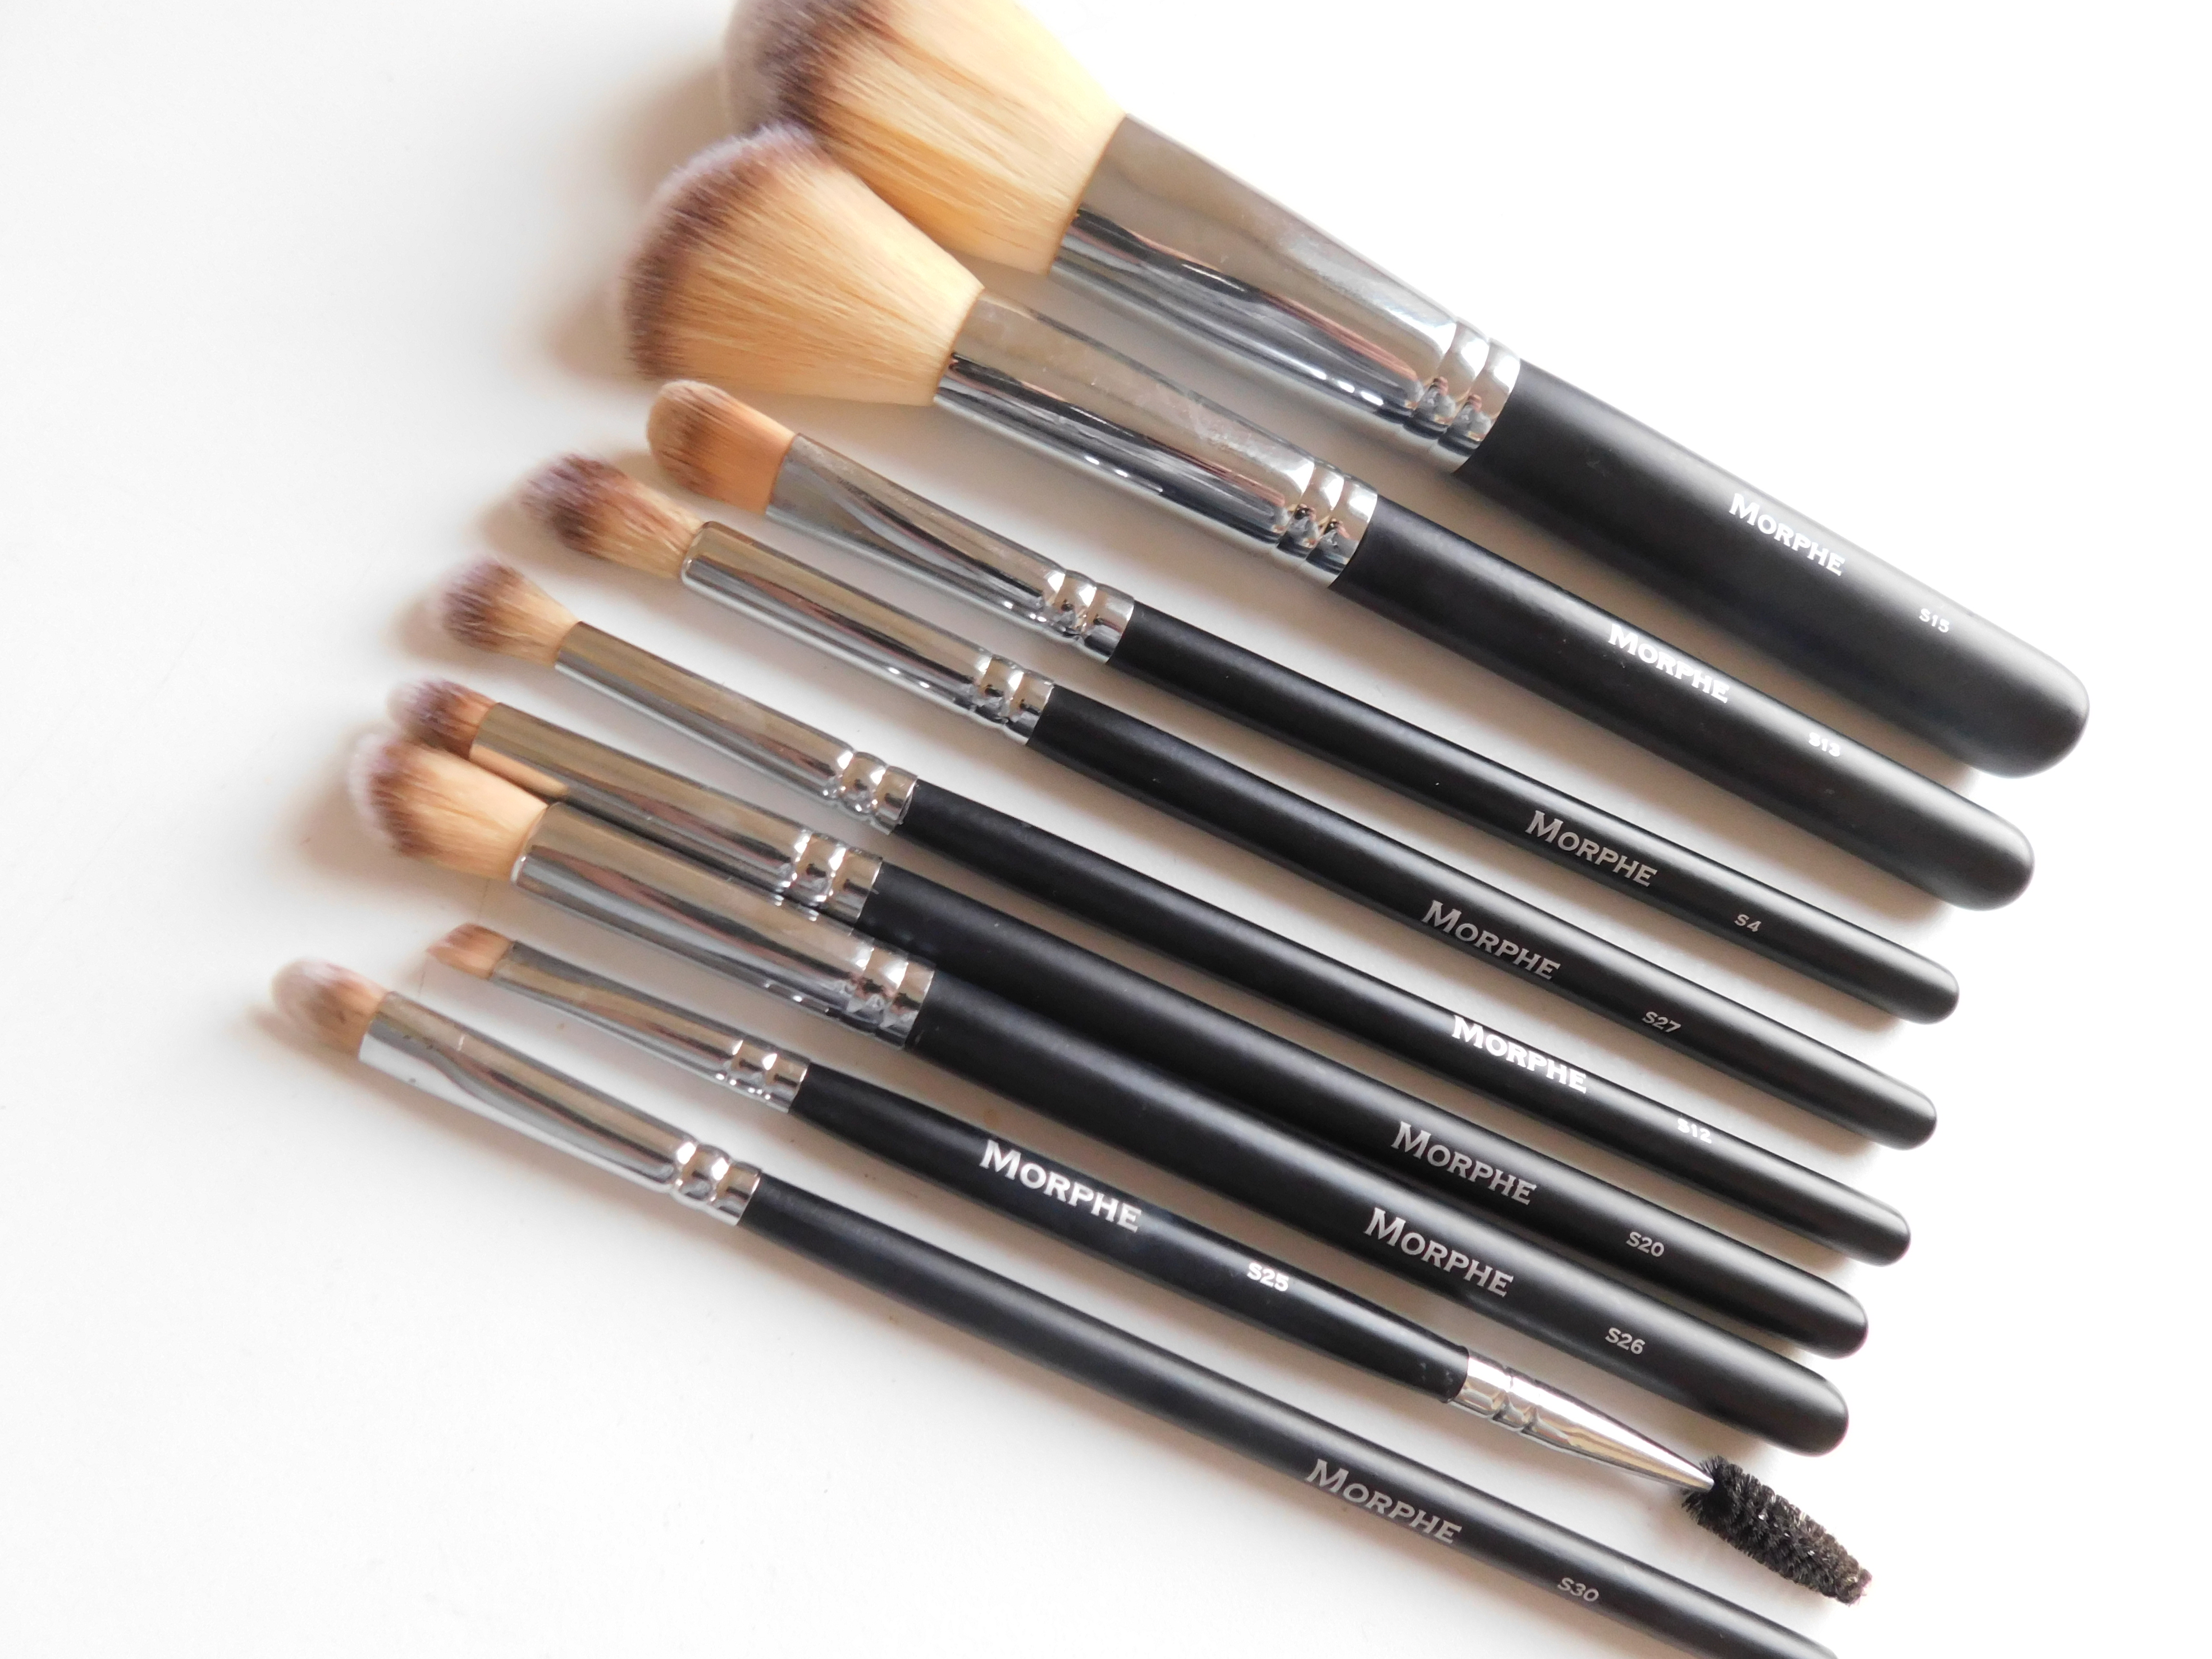 Favourite Morphe Brushes from the 15 piece vegan pro set.